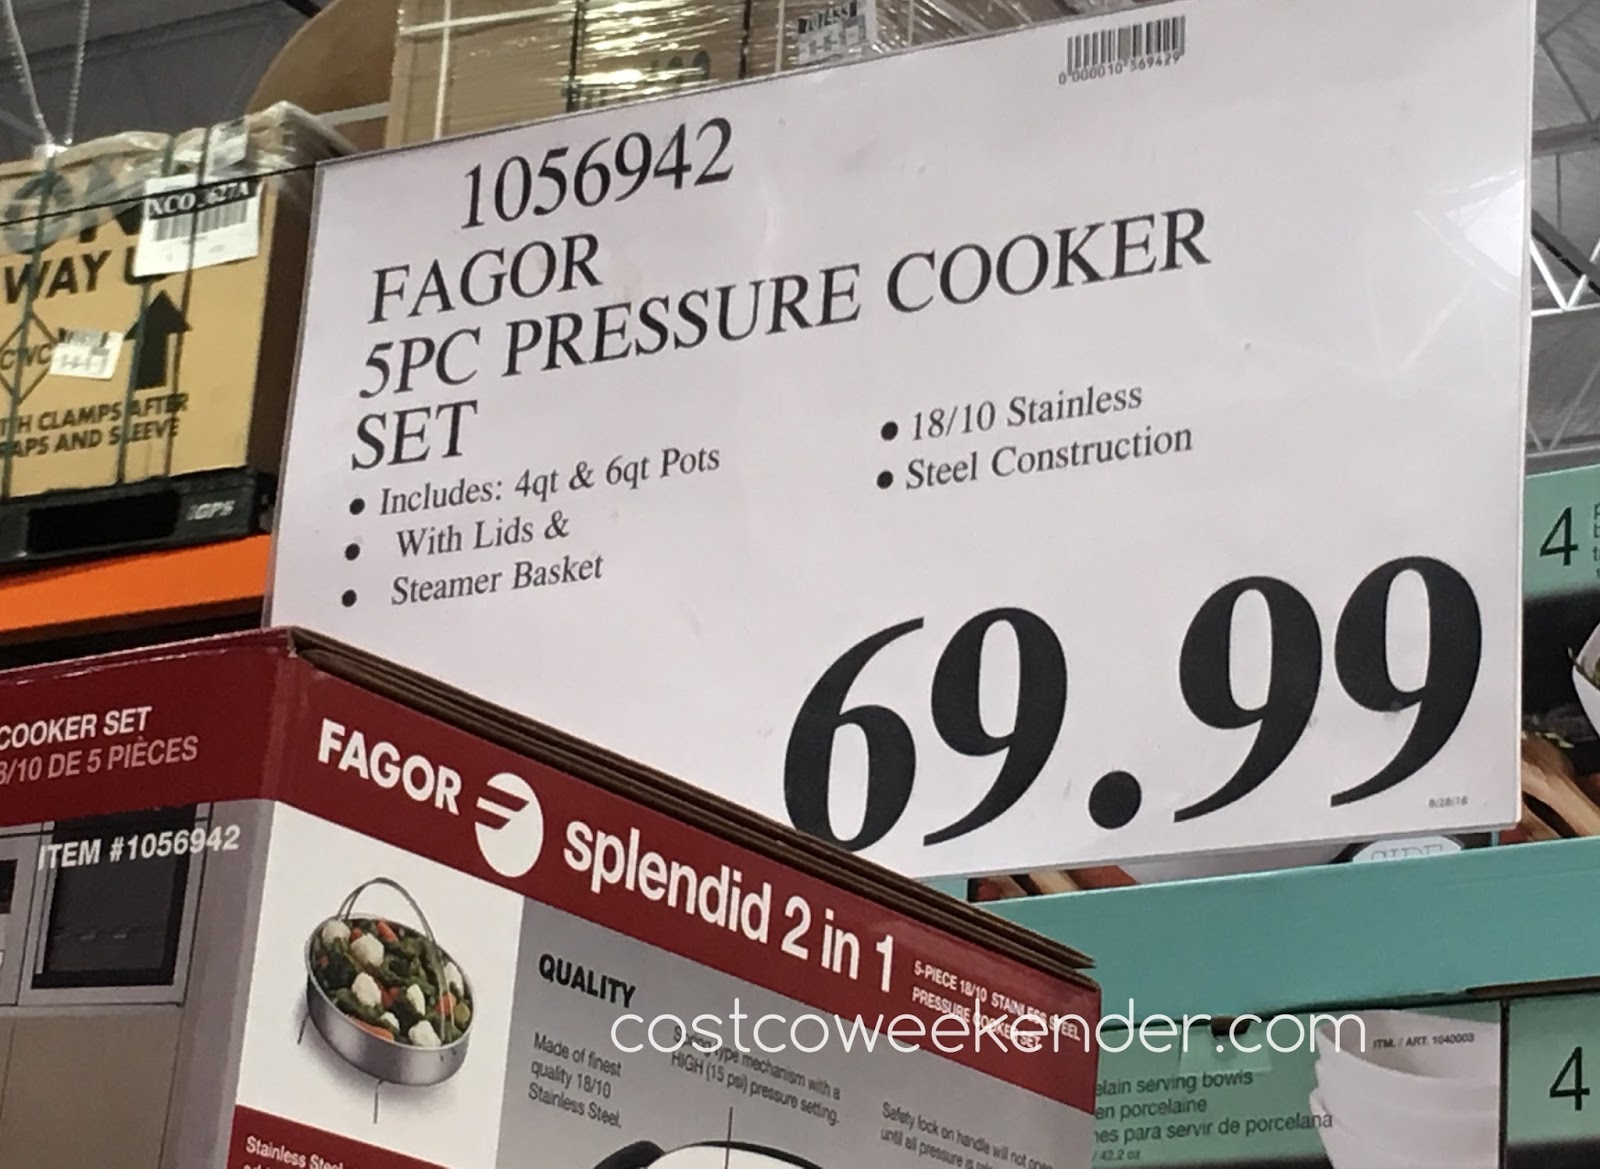 Deal for the Fagor Splendid 2 in 1 5-piece 18/10 Stainless Steel Pressure Cooker Set at Costco